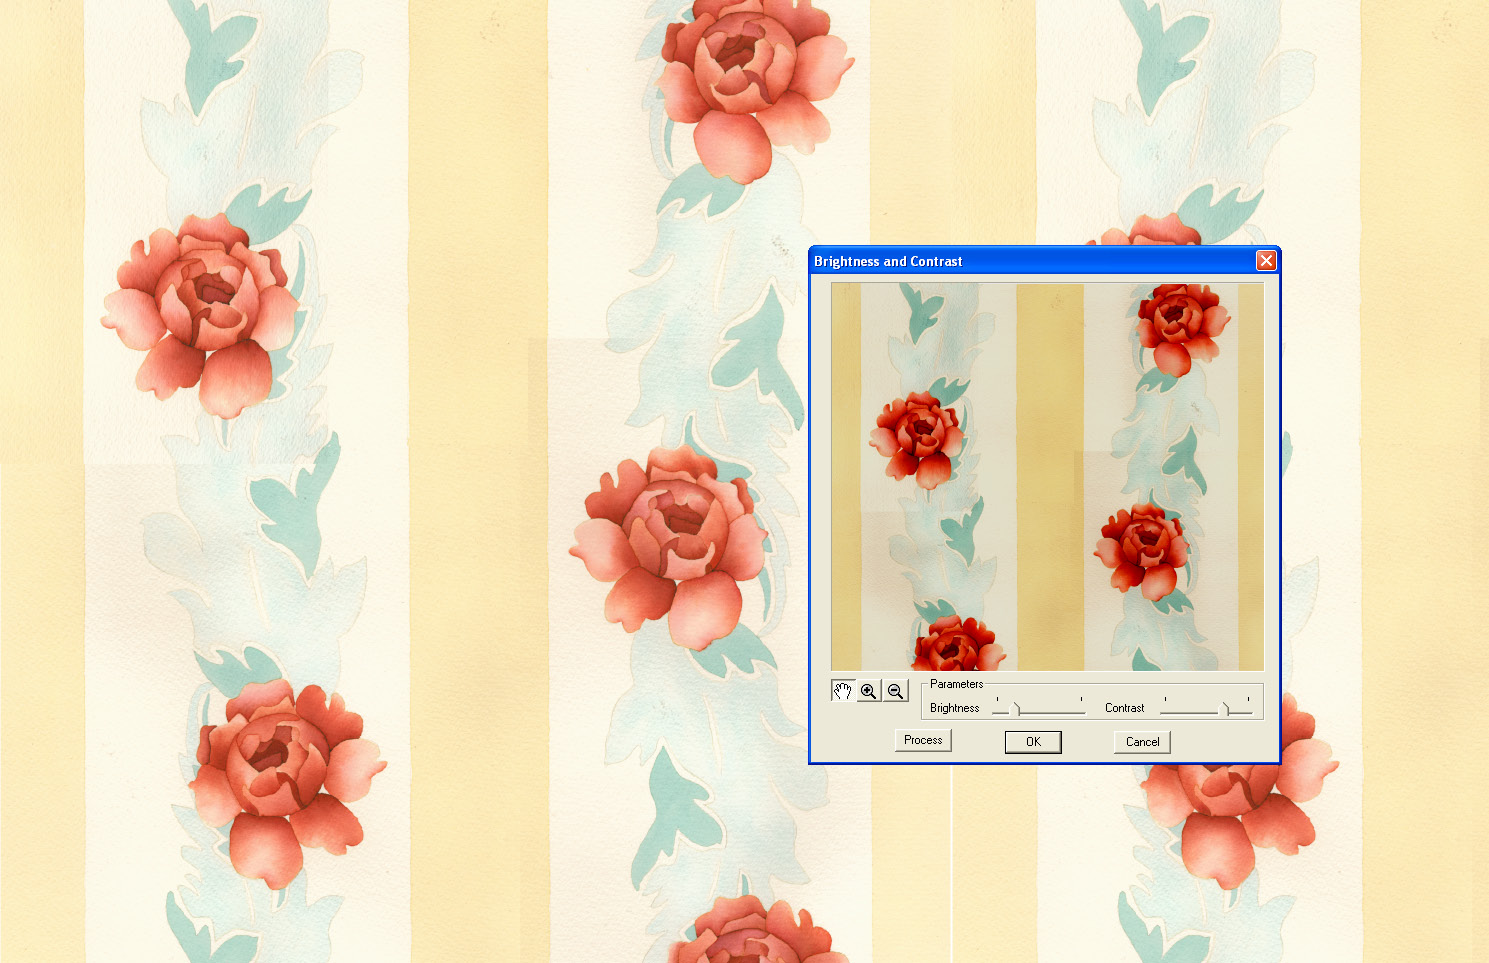 screen shot showing advanced filters being applied to scan rose design file